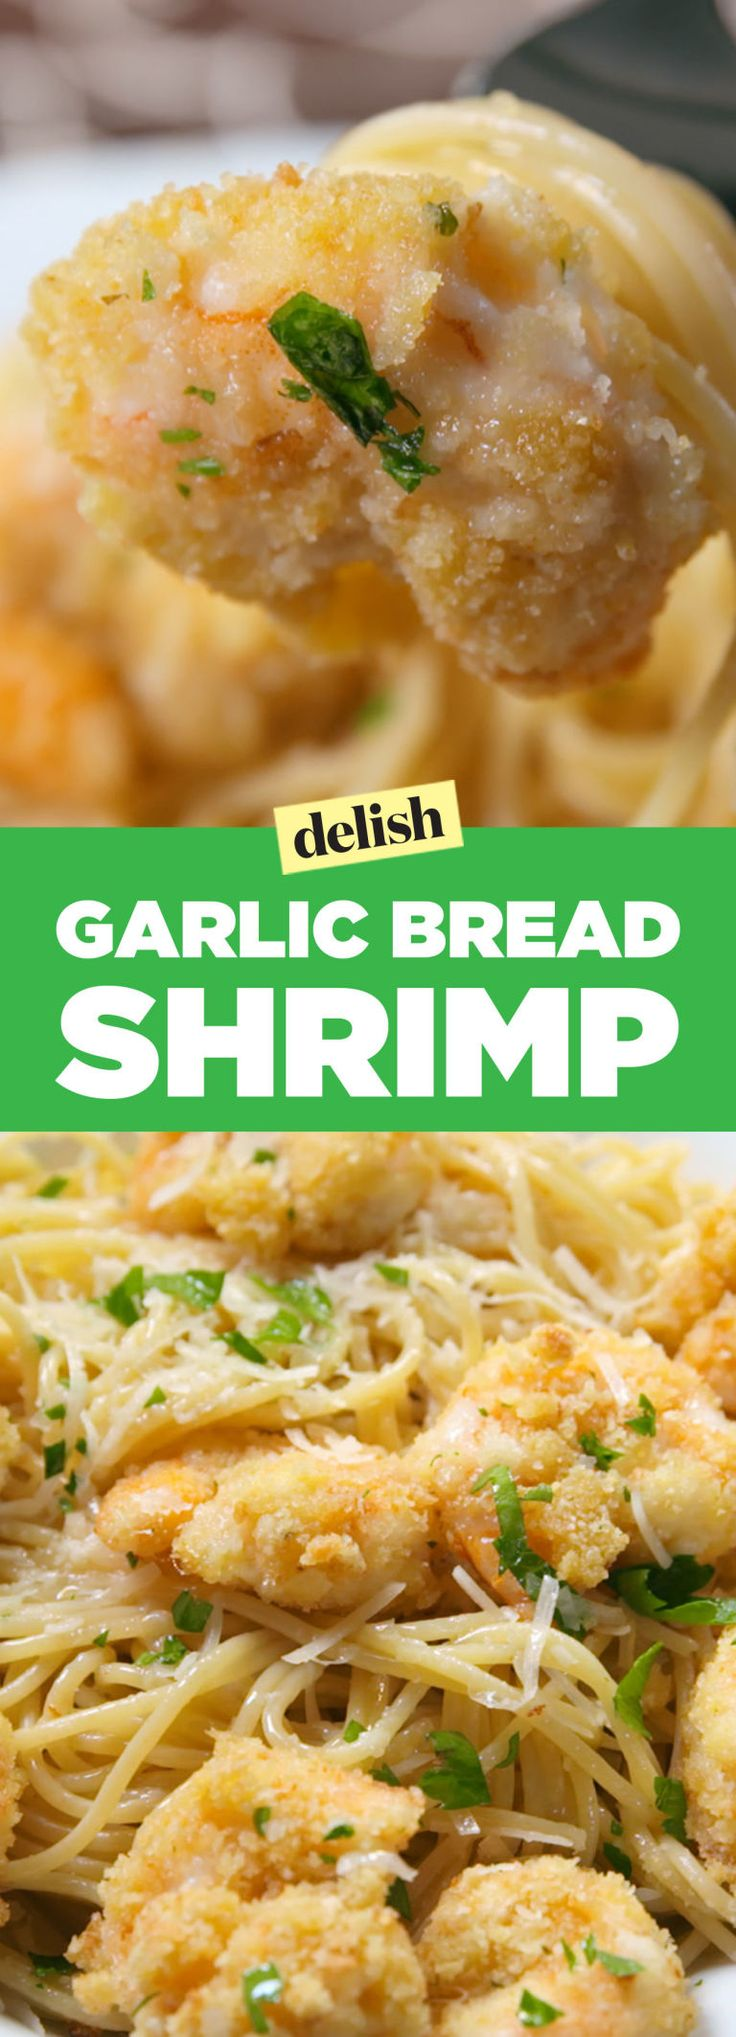 Garlic bread shrimp uses the most amazing frozen garlic bread hack. Try it ASAP! Get the recipe on Delish.com.